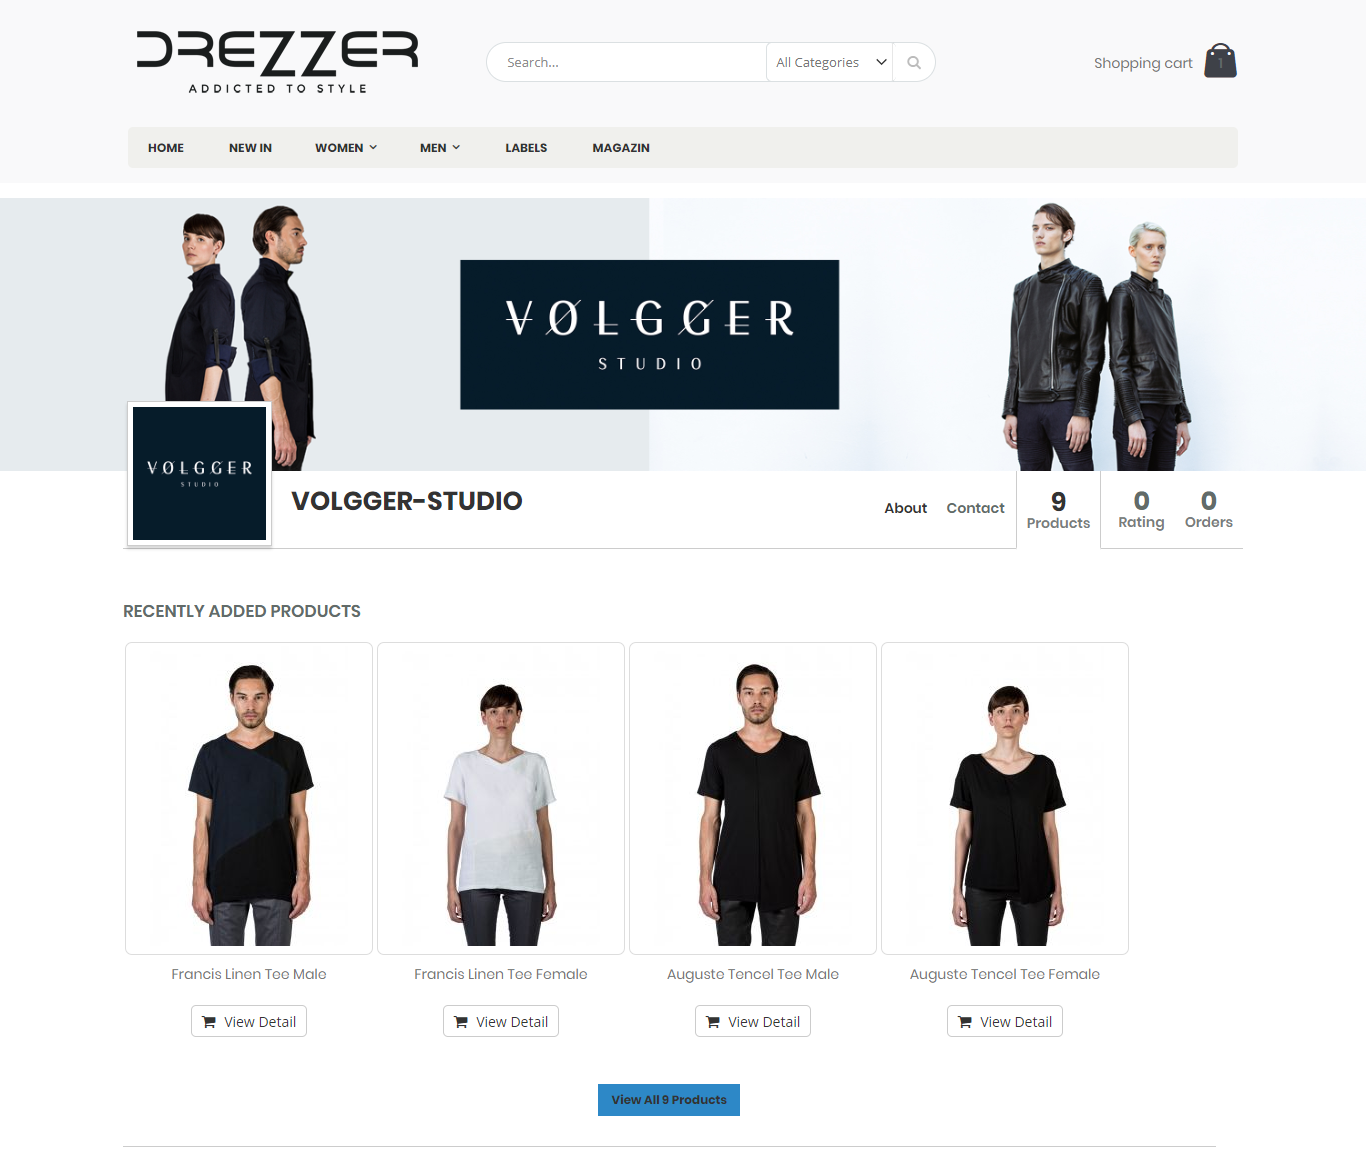 drezzer-marketplace-seller-profile-shop